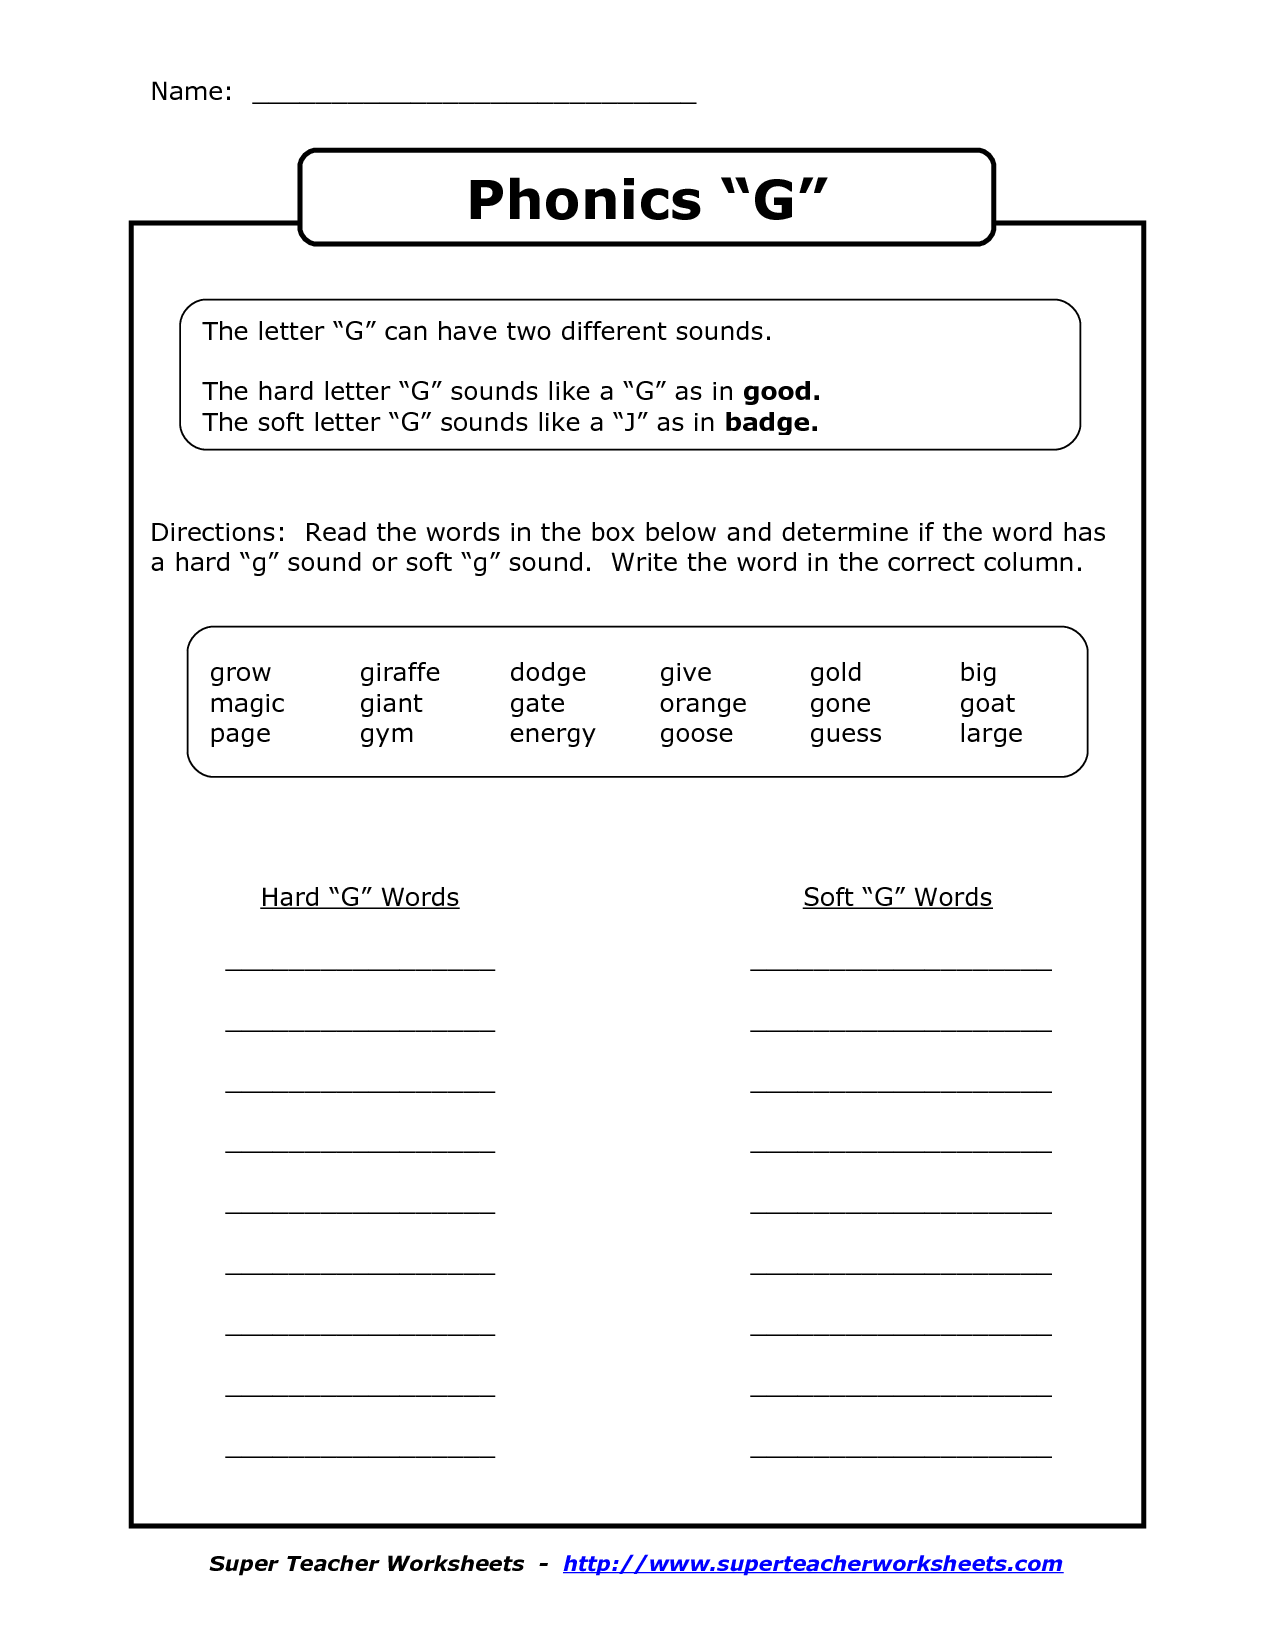 10 Best Images Of Worksheet For G Sound